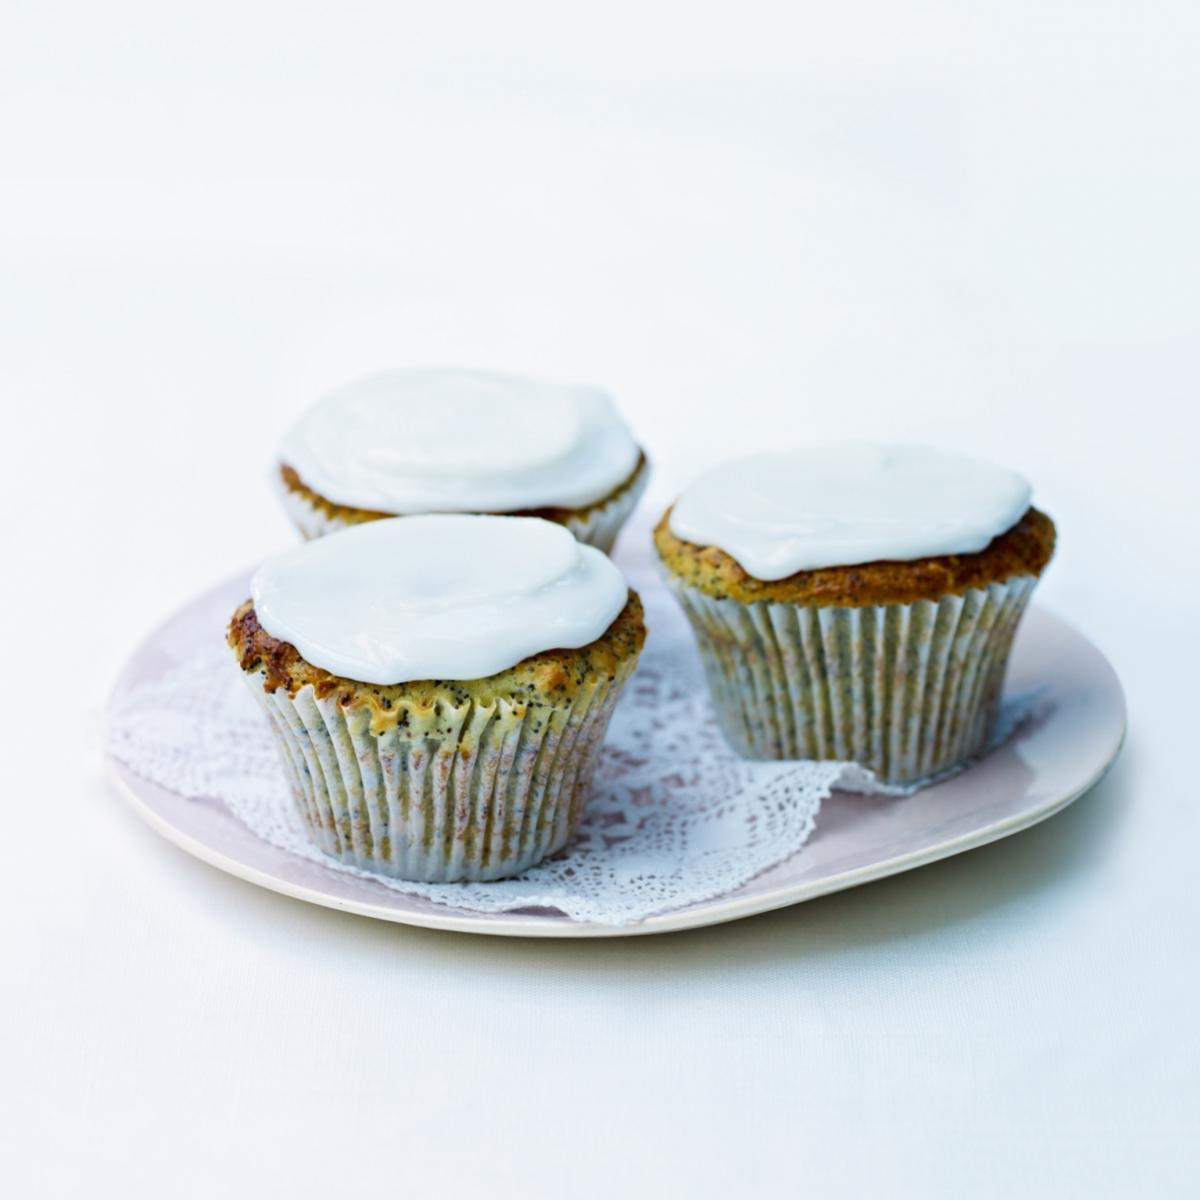 Cakes iced lemon and poppy seed muffins